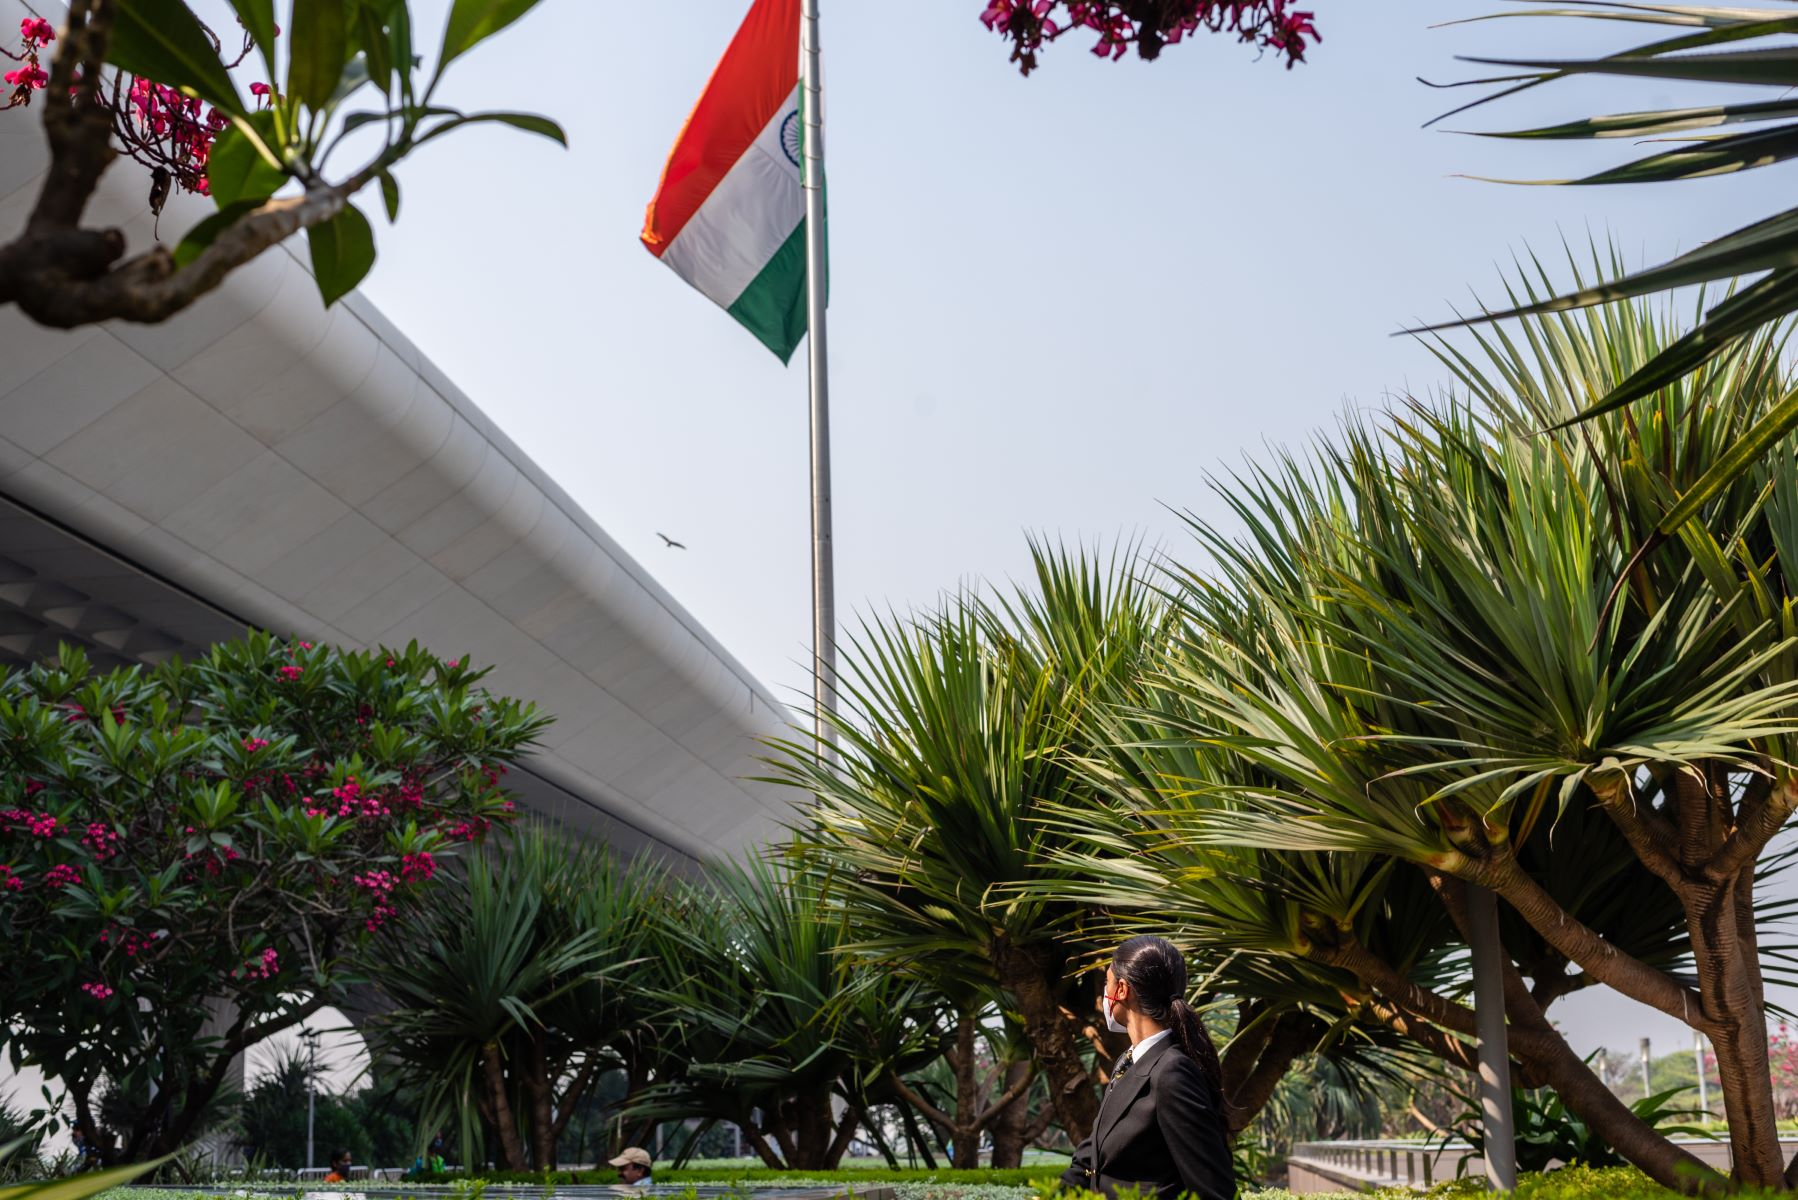 Captain Thind in front of the Indian flag at Mumbai's Chhatrapati Shivaji Maharaj International Airport.